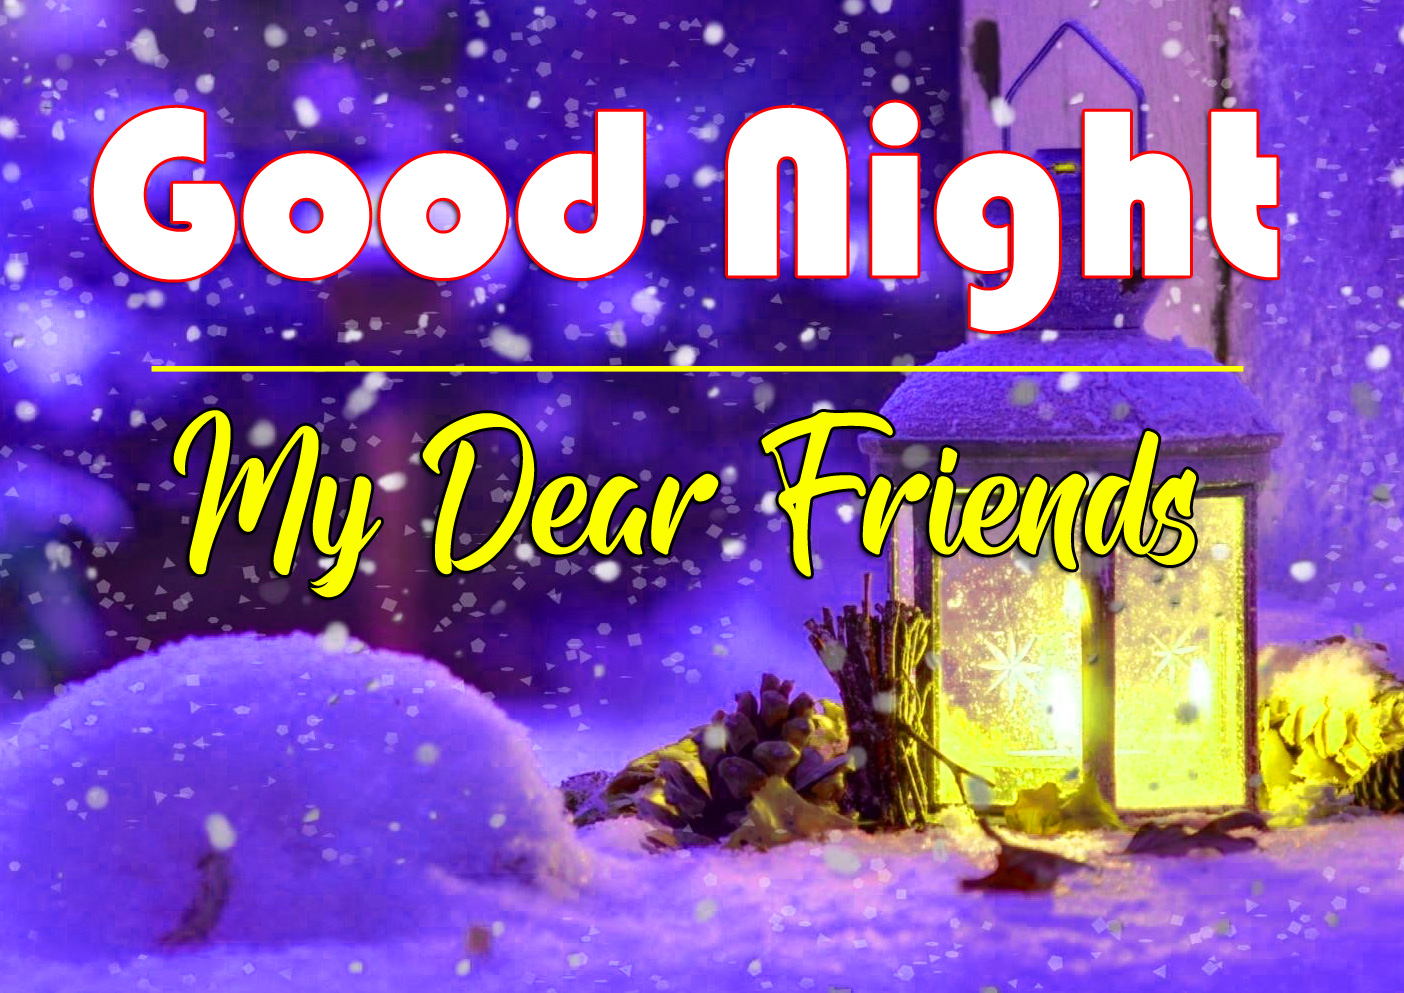 Free Best Quality 4k Good Night Images Pics Download